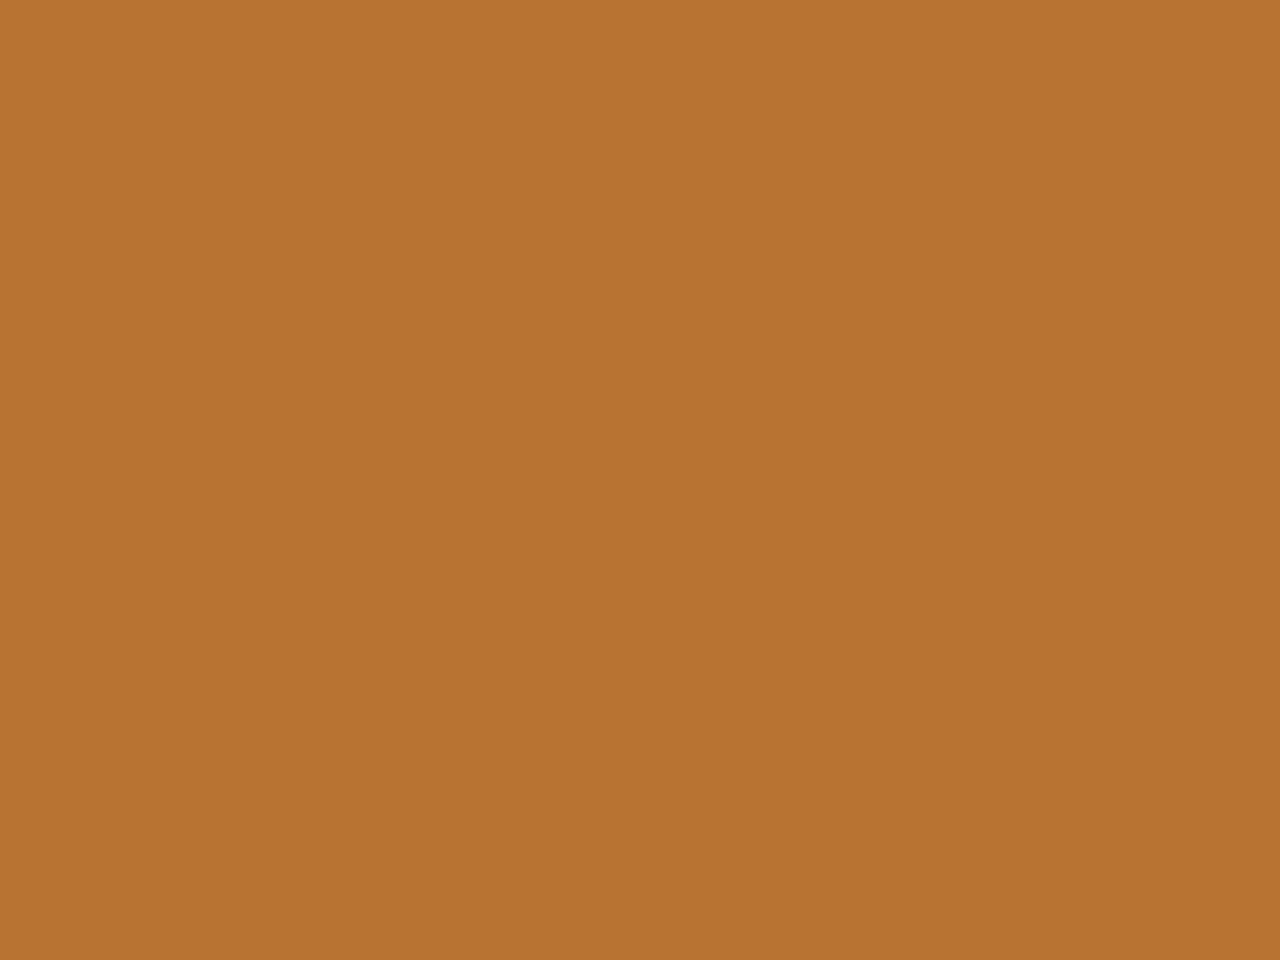 1280x960 Copper Solid Color Background